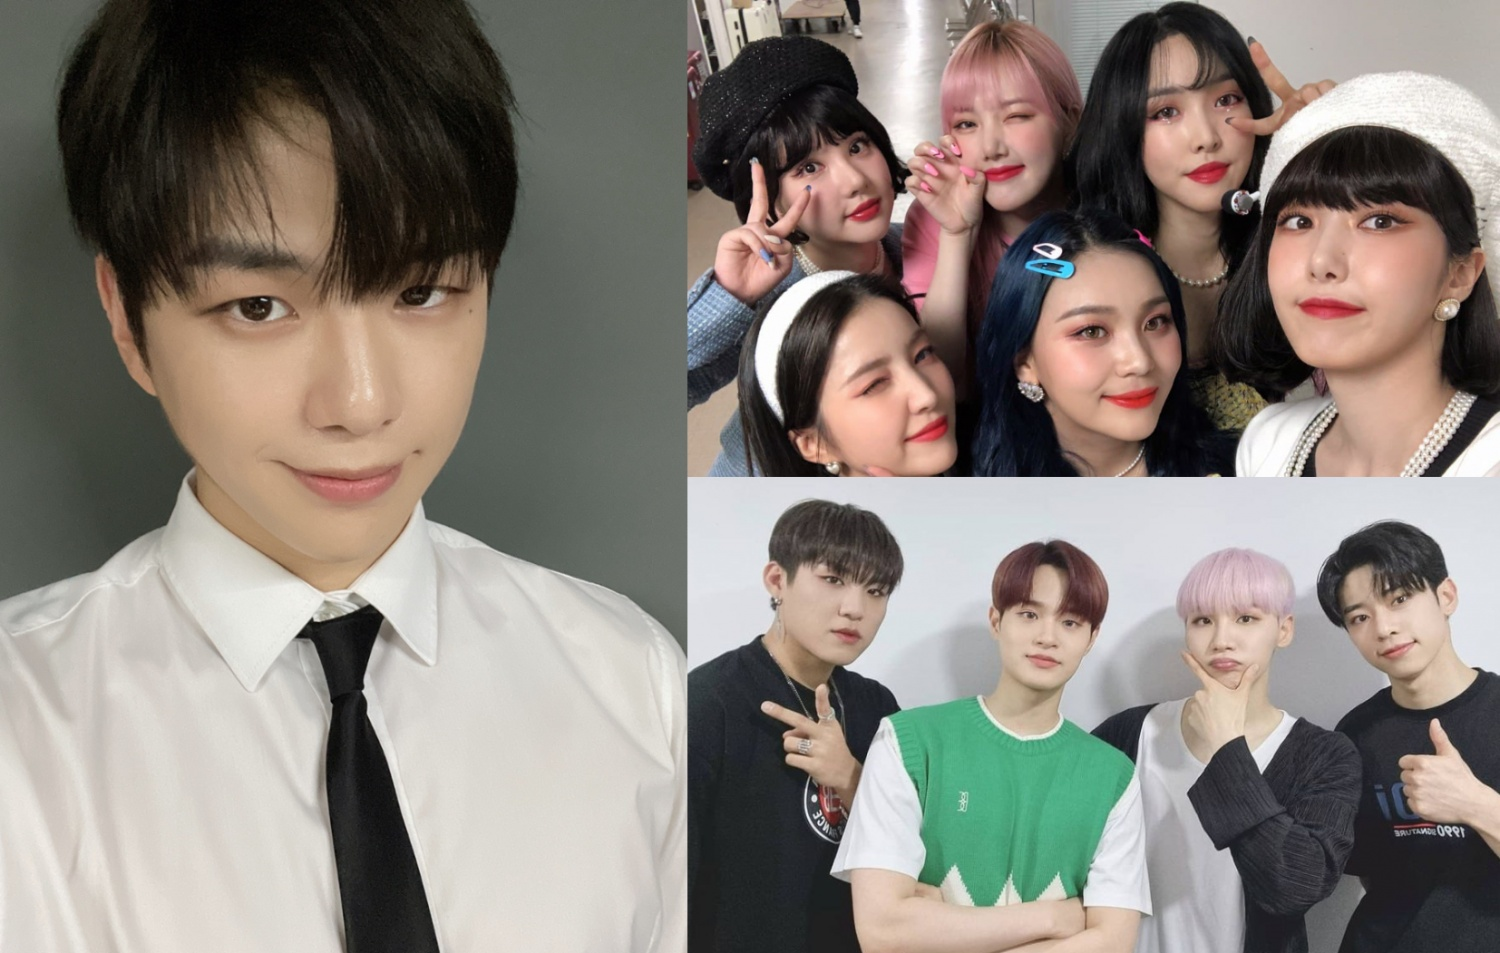 Kang Daniel 'PARANOIA,' GFRIEND 'MAGO,' and More Are the 'Go-To Idol Songs for Tasty Beats'